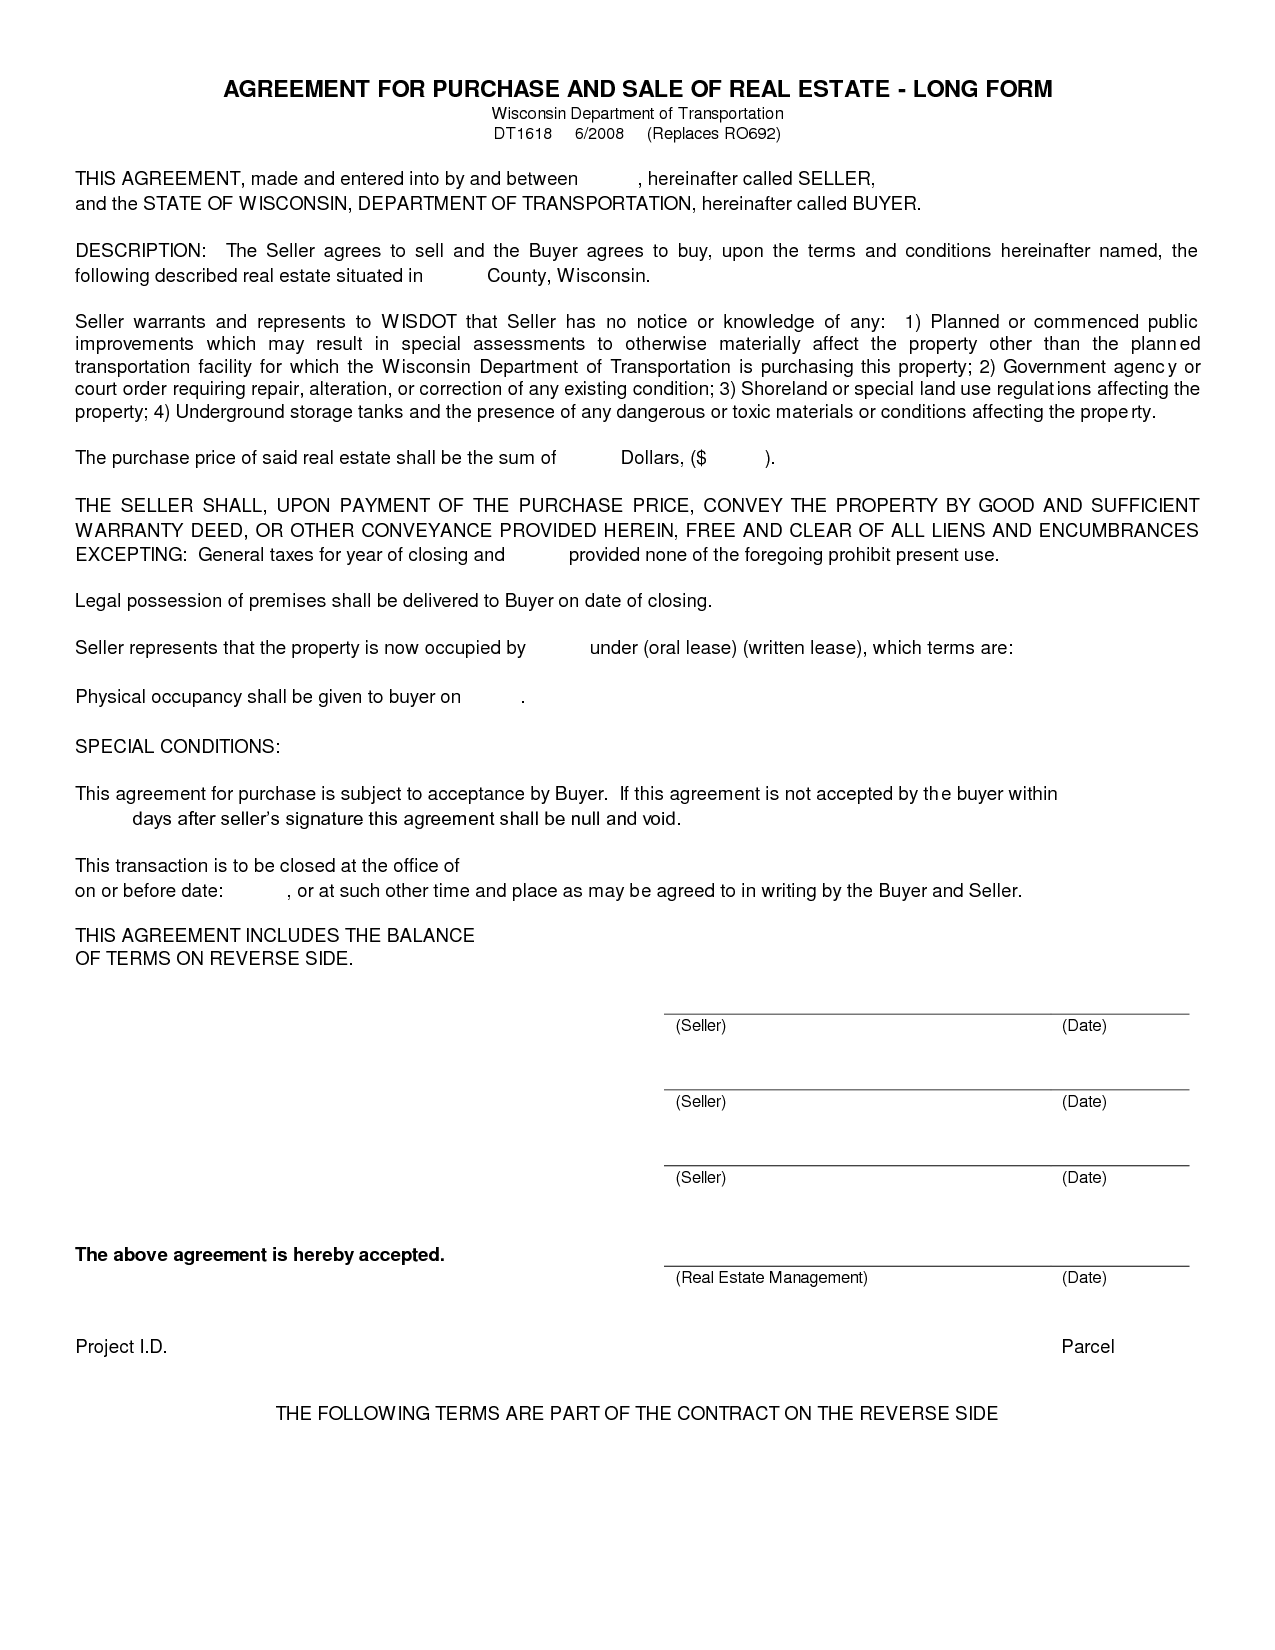 Free Blank Purchase Agreement Form Images   Agreement To Purchase Real  Estate Form Free  Property Purchase Agreement Template